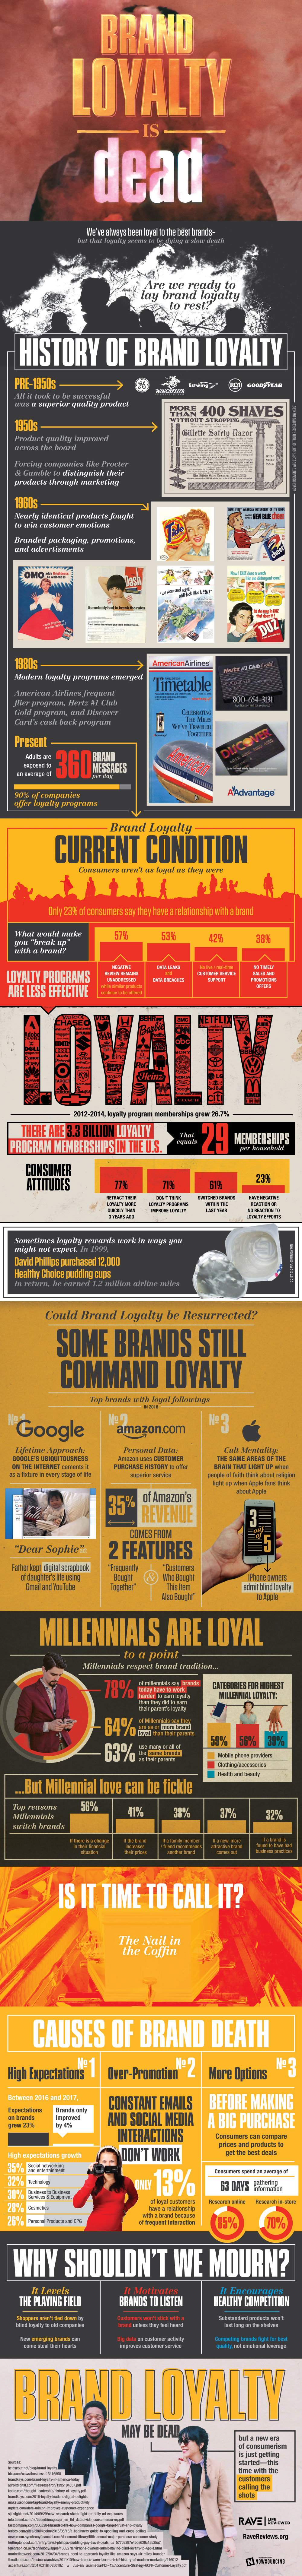 brand loyalty for small business owners